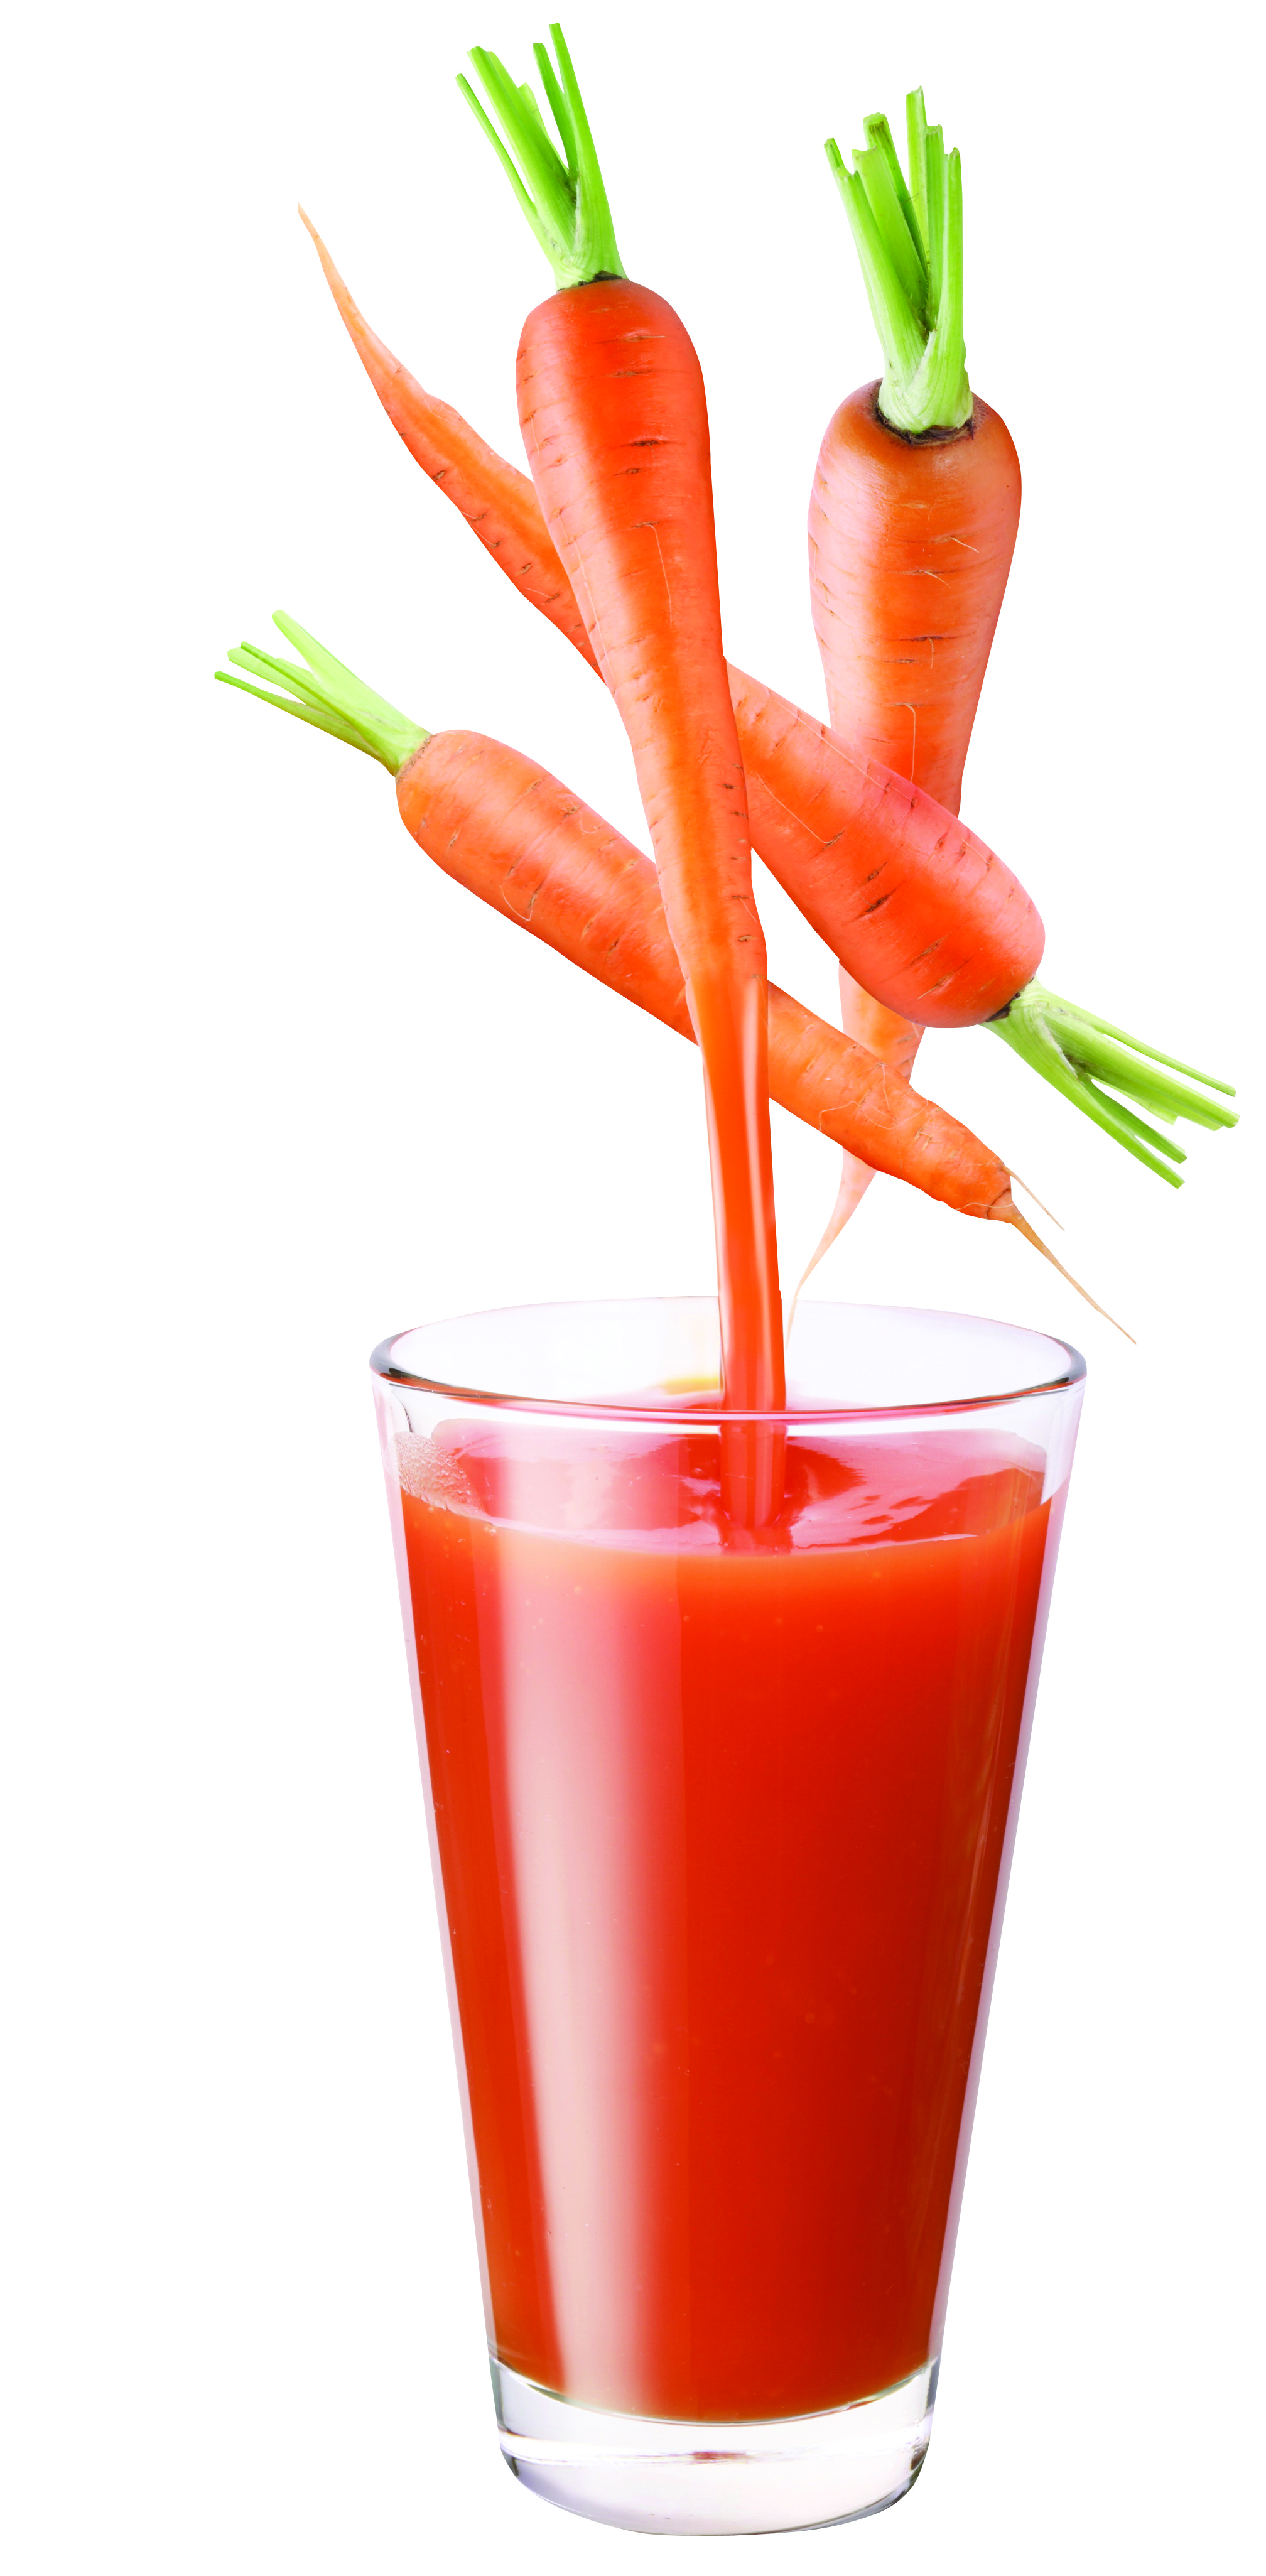 daily jusa detox juice juicing 5 foods for daily detox daily detox